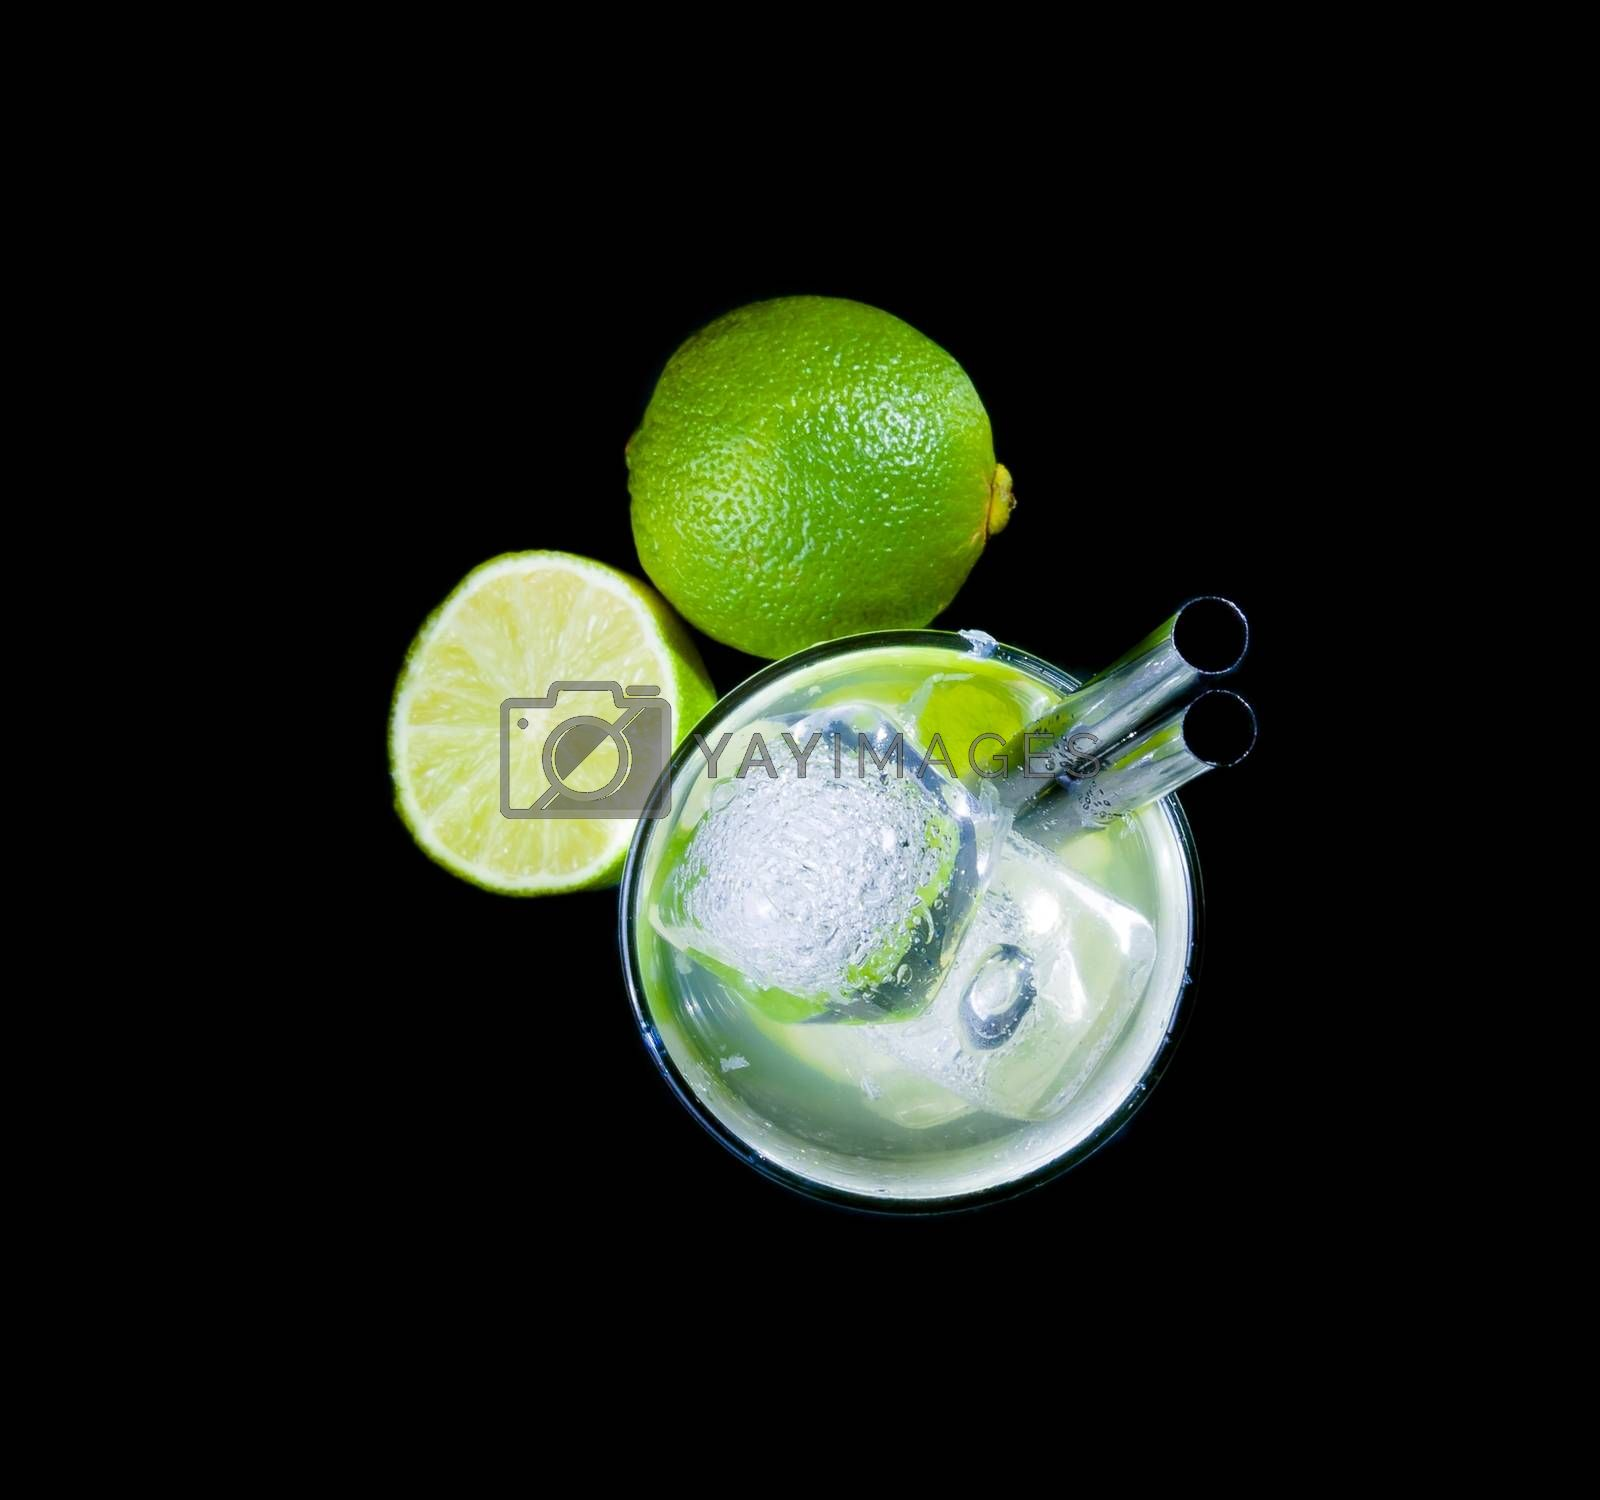 top of view of glasses with cocktail and ice near lime on black background by donfiore